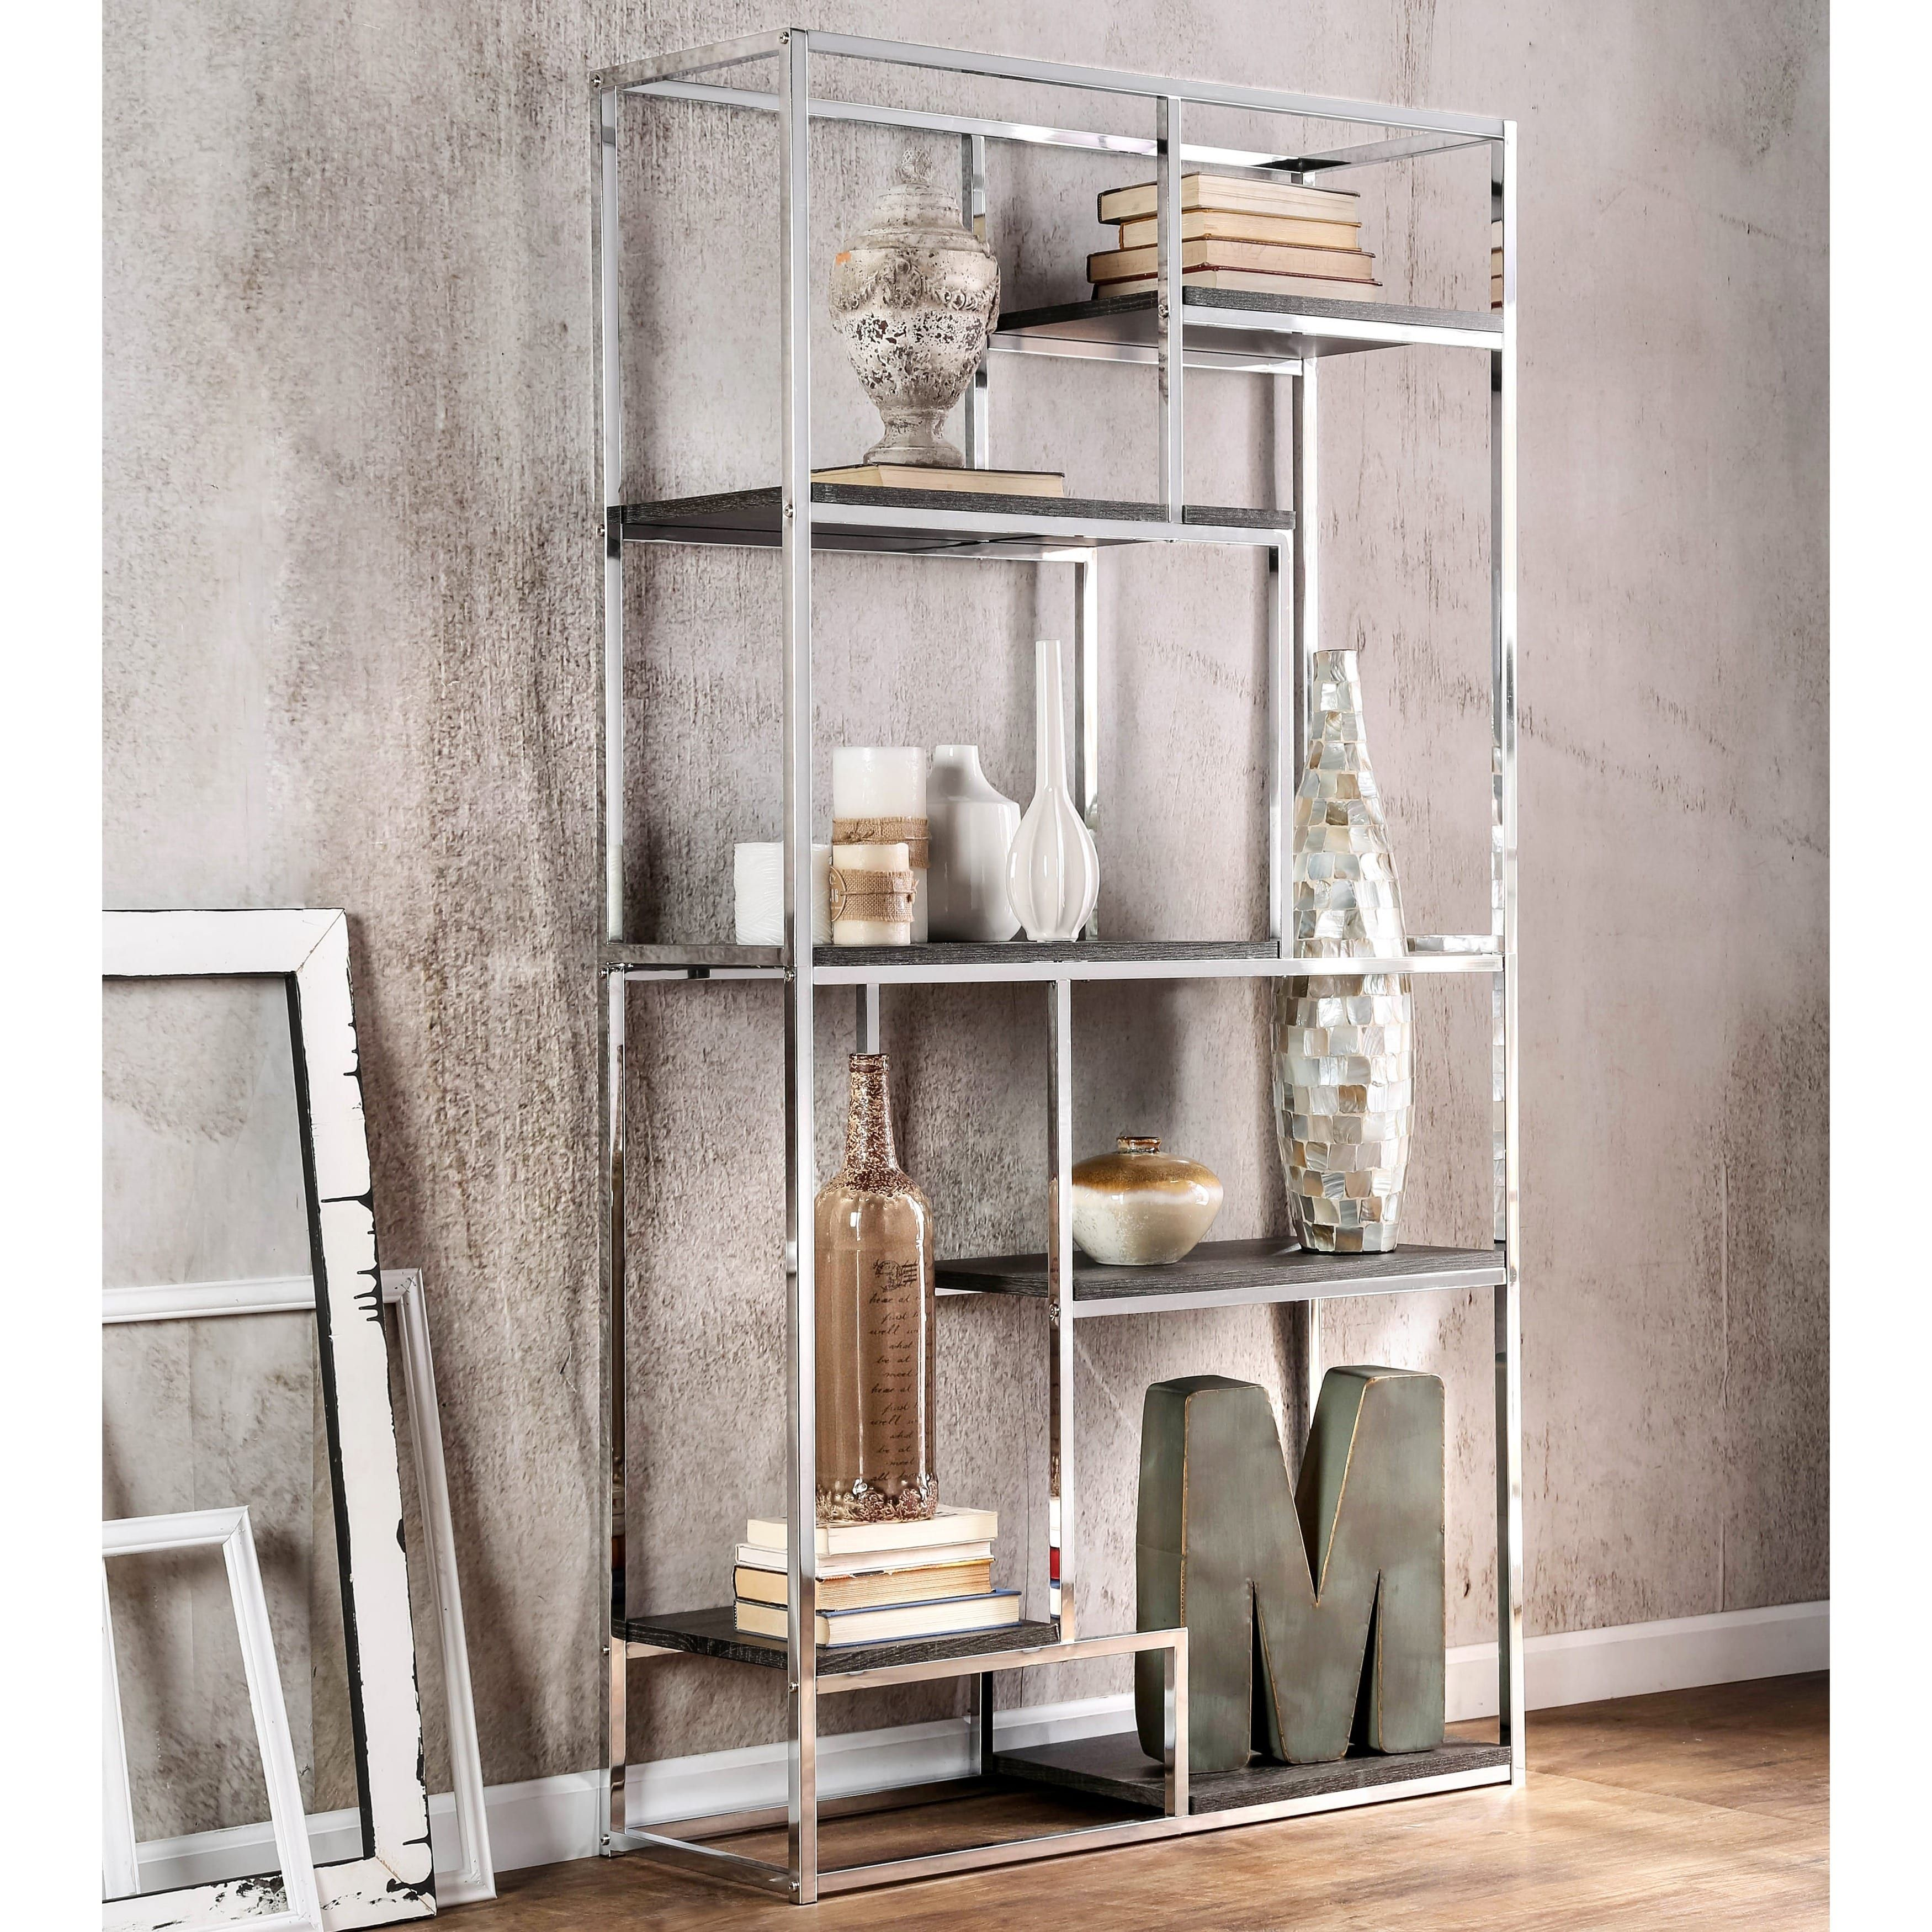 shelves hammered storages recommended bookcases ladder with to rack buy chrome steel bookshelf full pot size